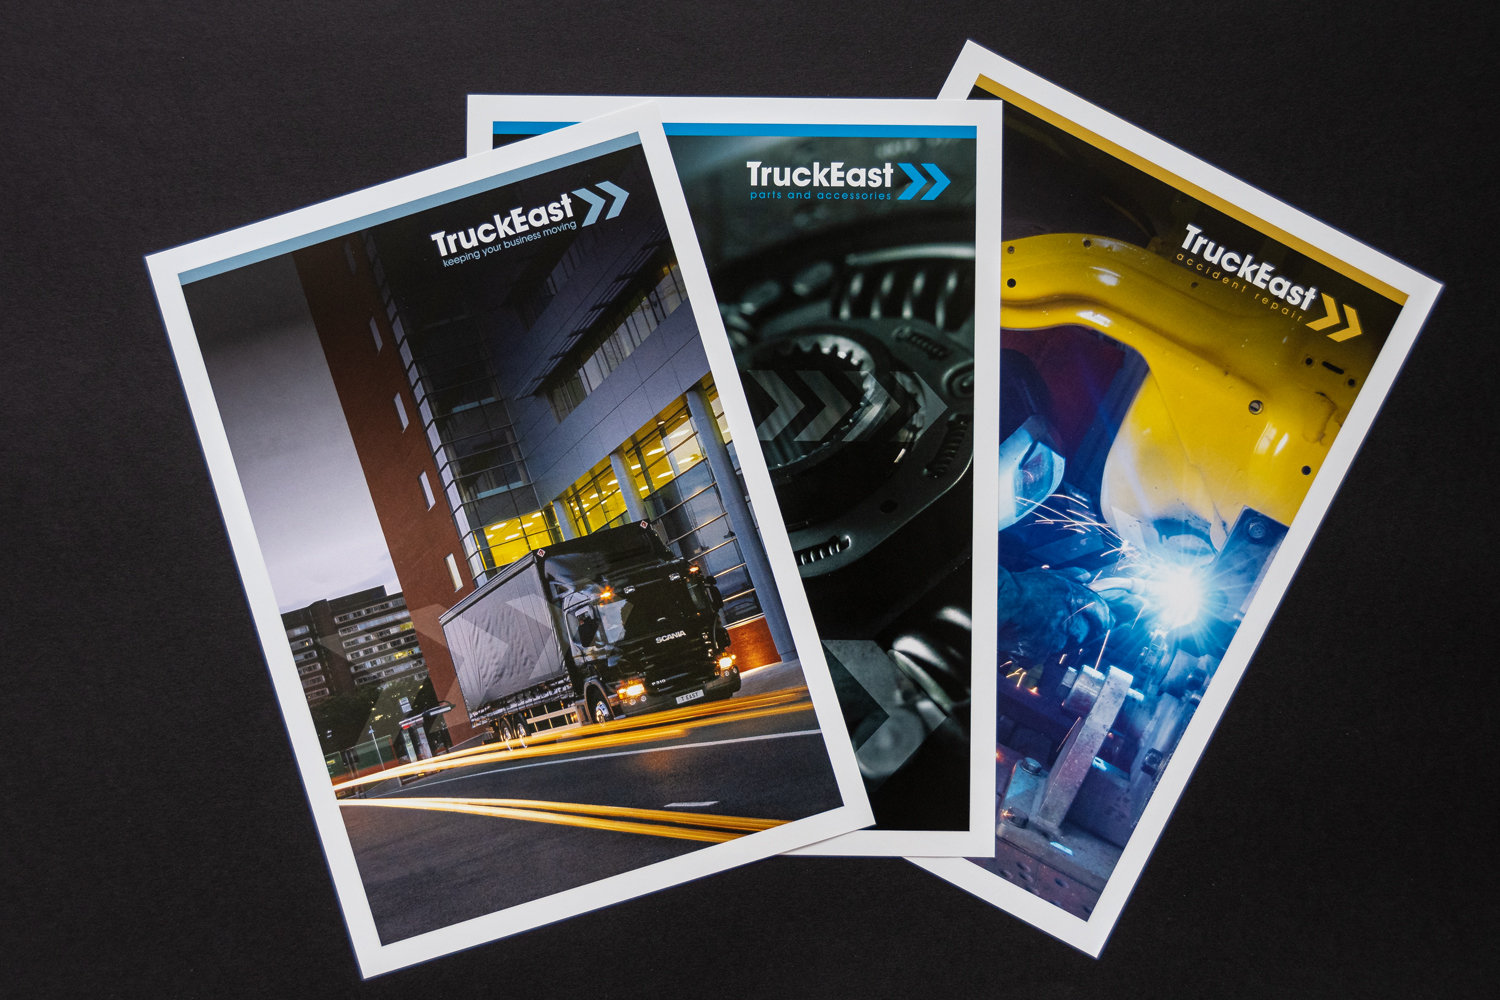 truckeast folder inserts of services